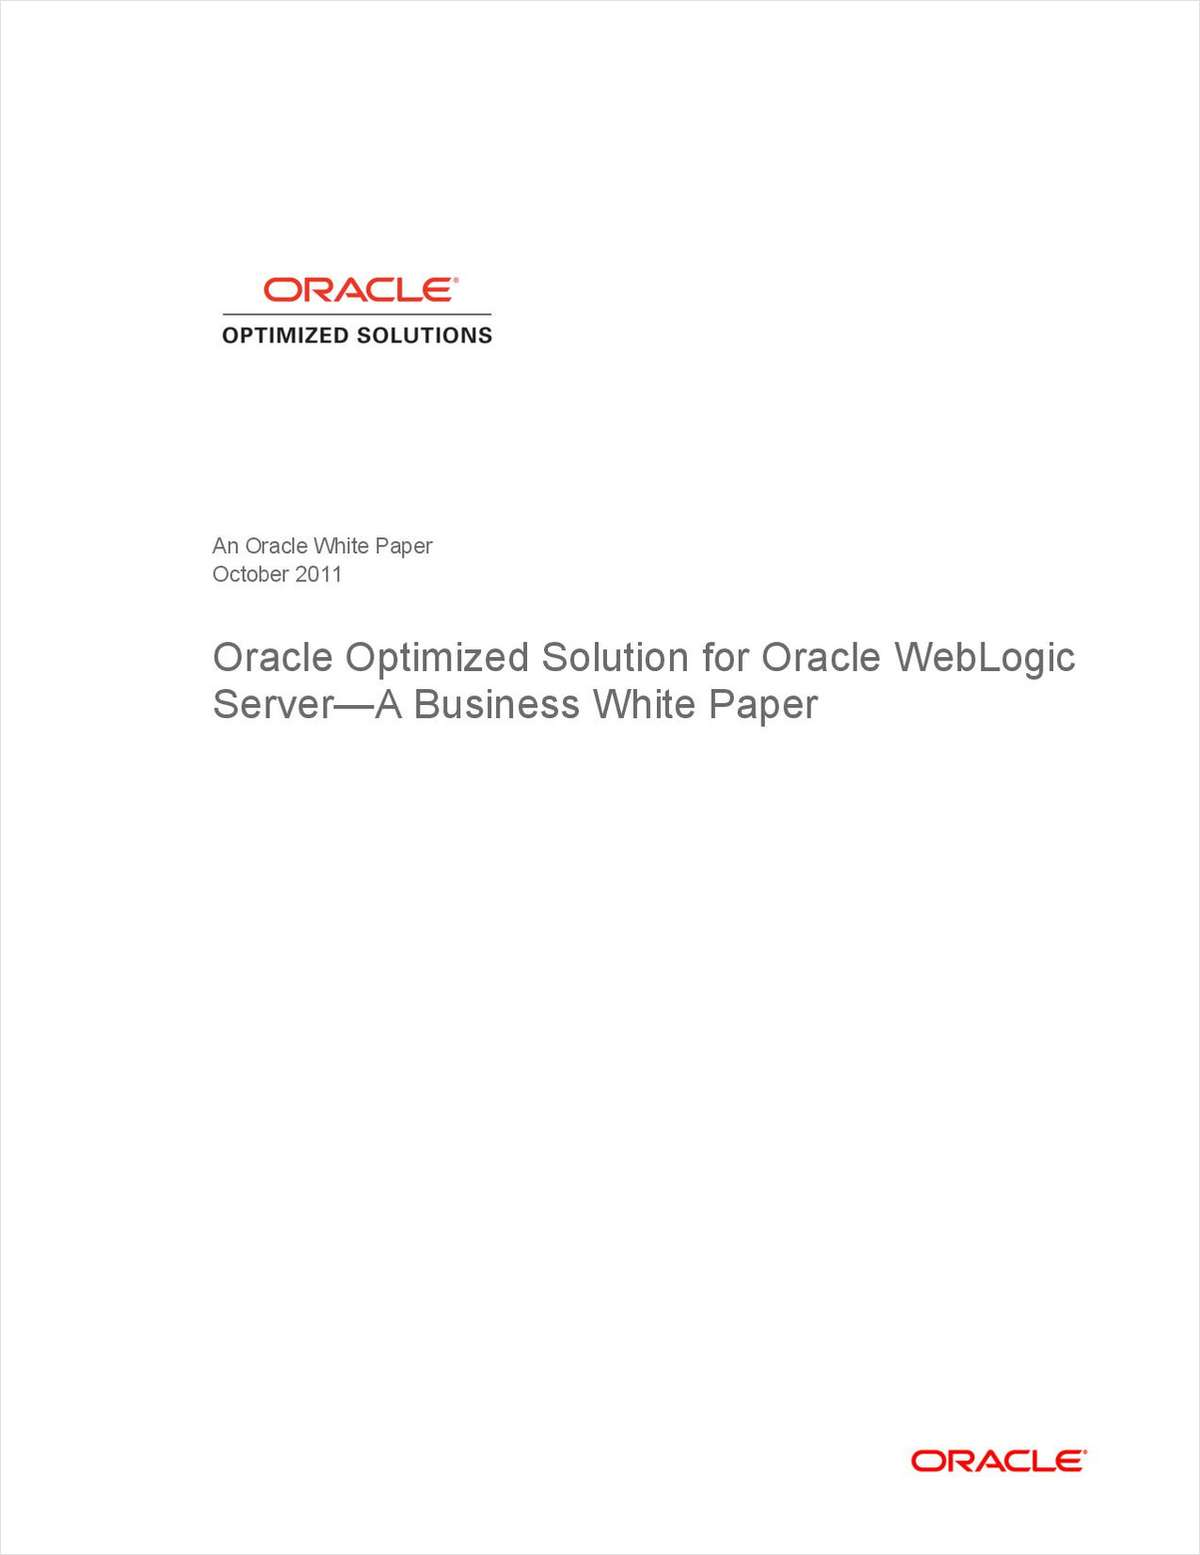 Oracle Optimized Solution for Oracle WebLogic Server-A Business White Paper